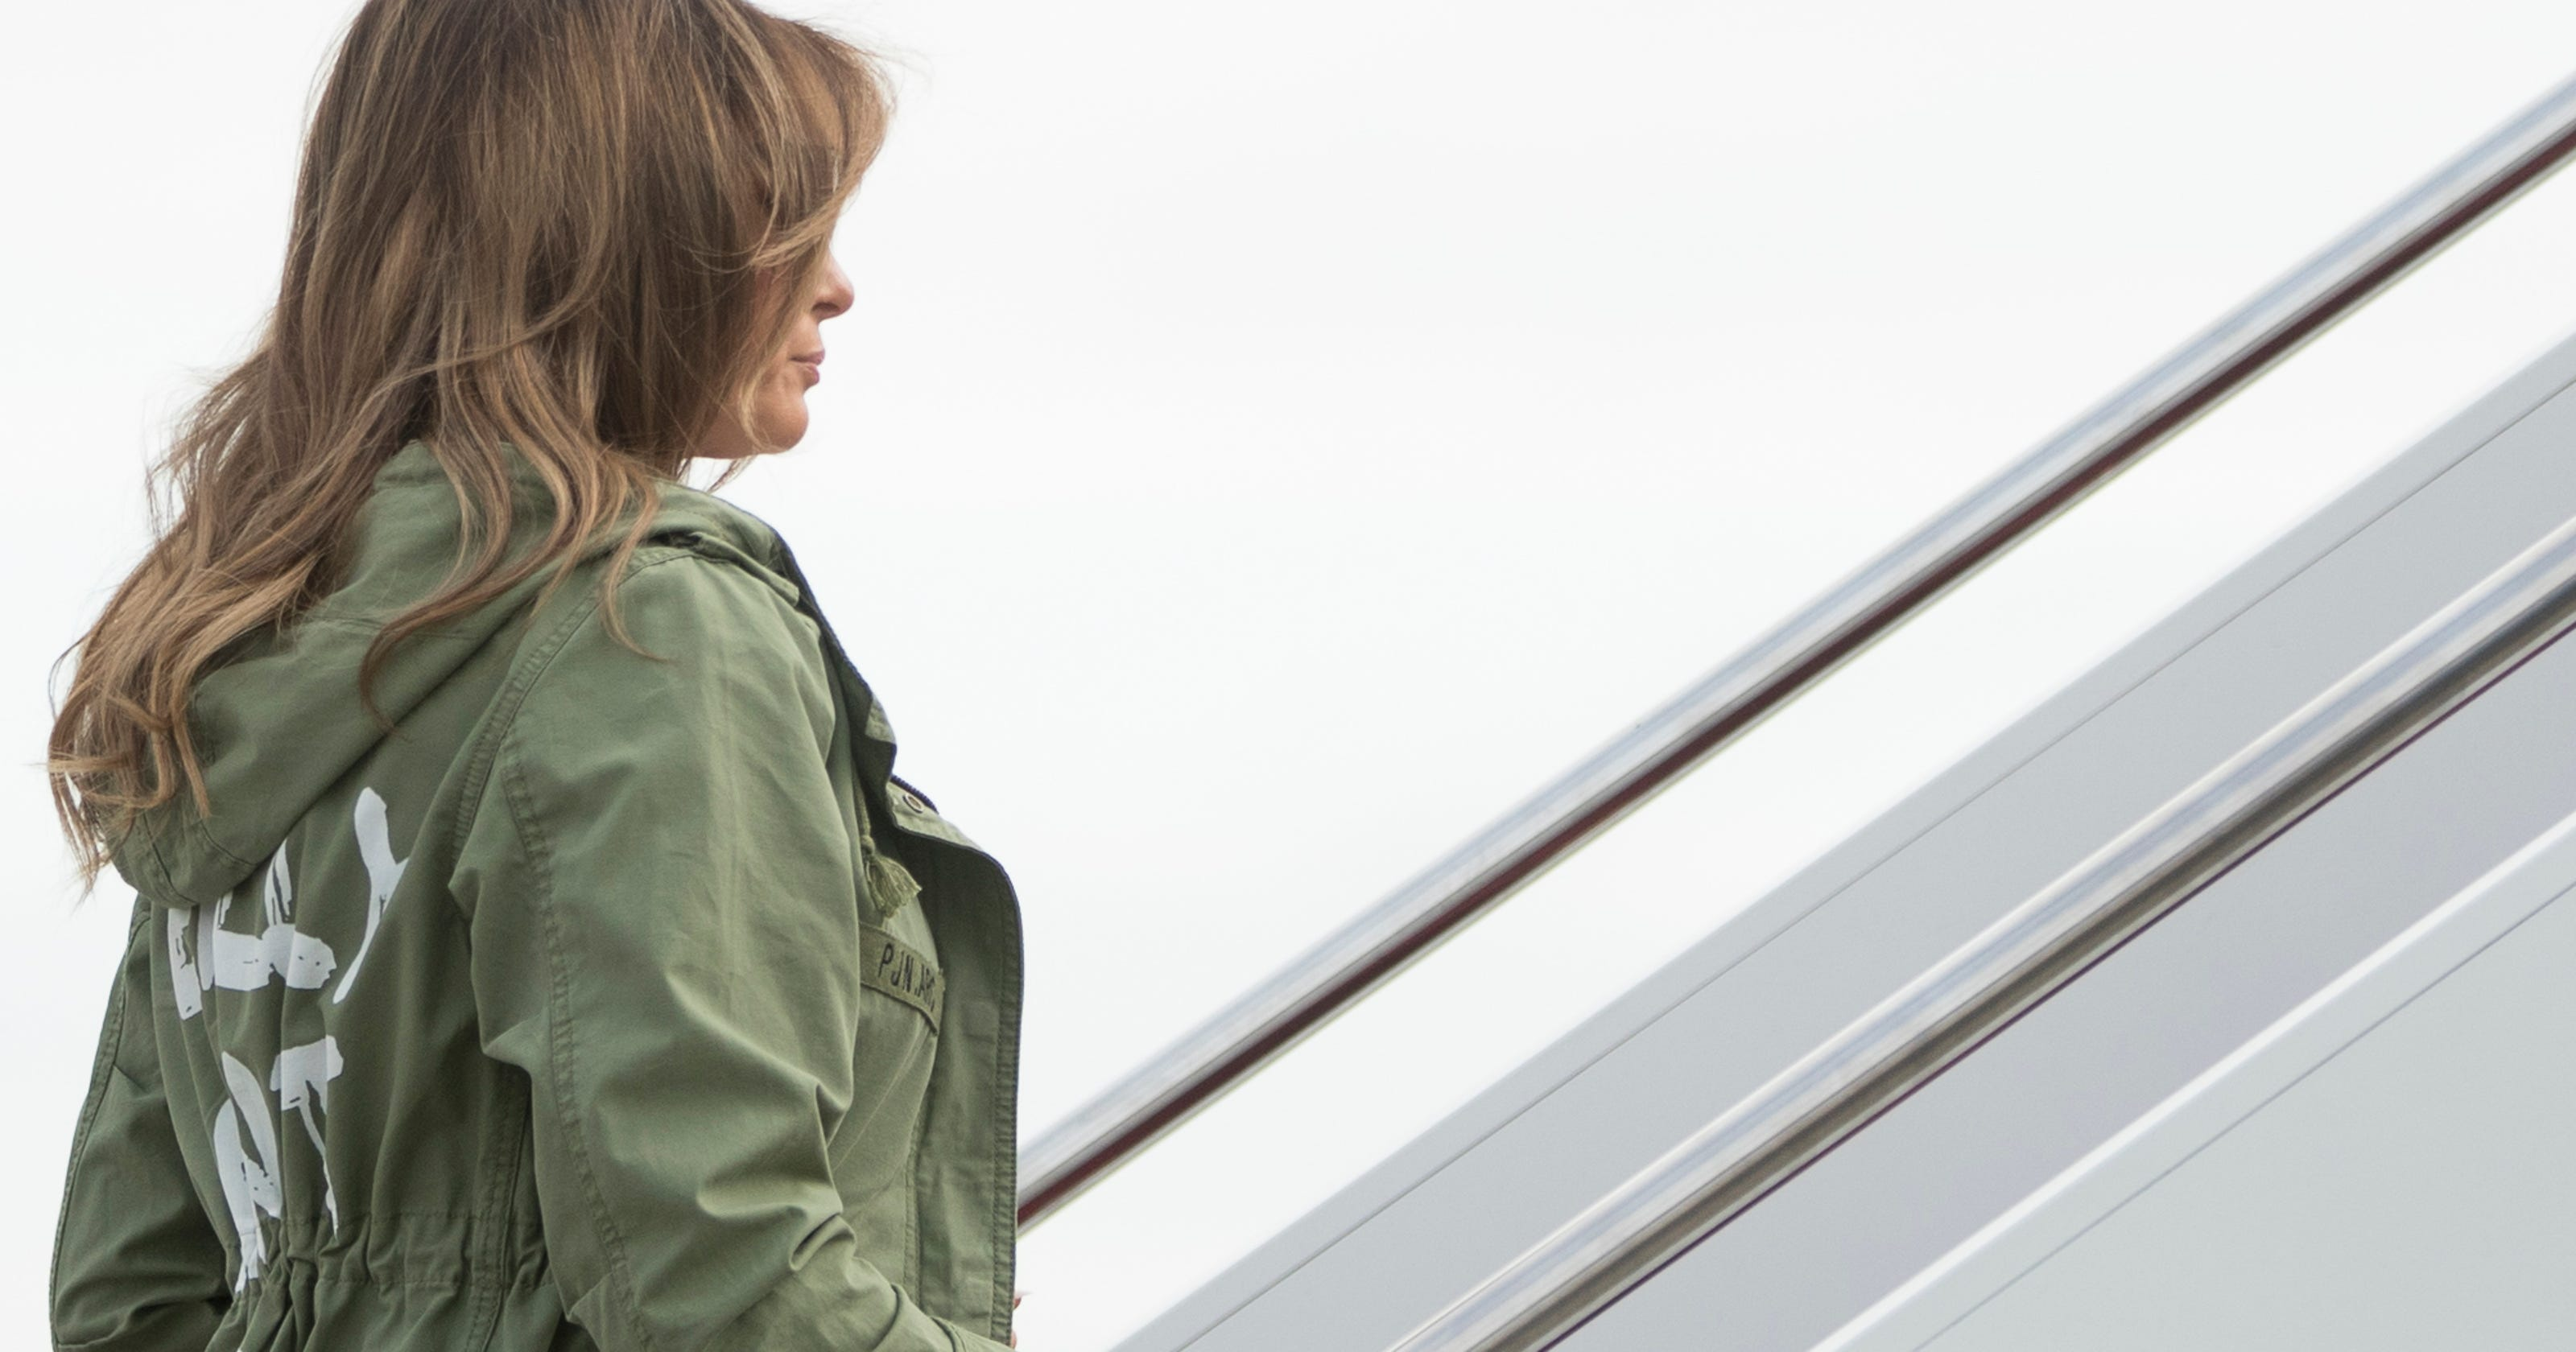 a498009c Melania Trump wears 'I don't care' jacket to visit immigrant children